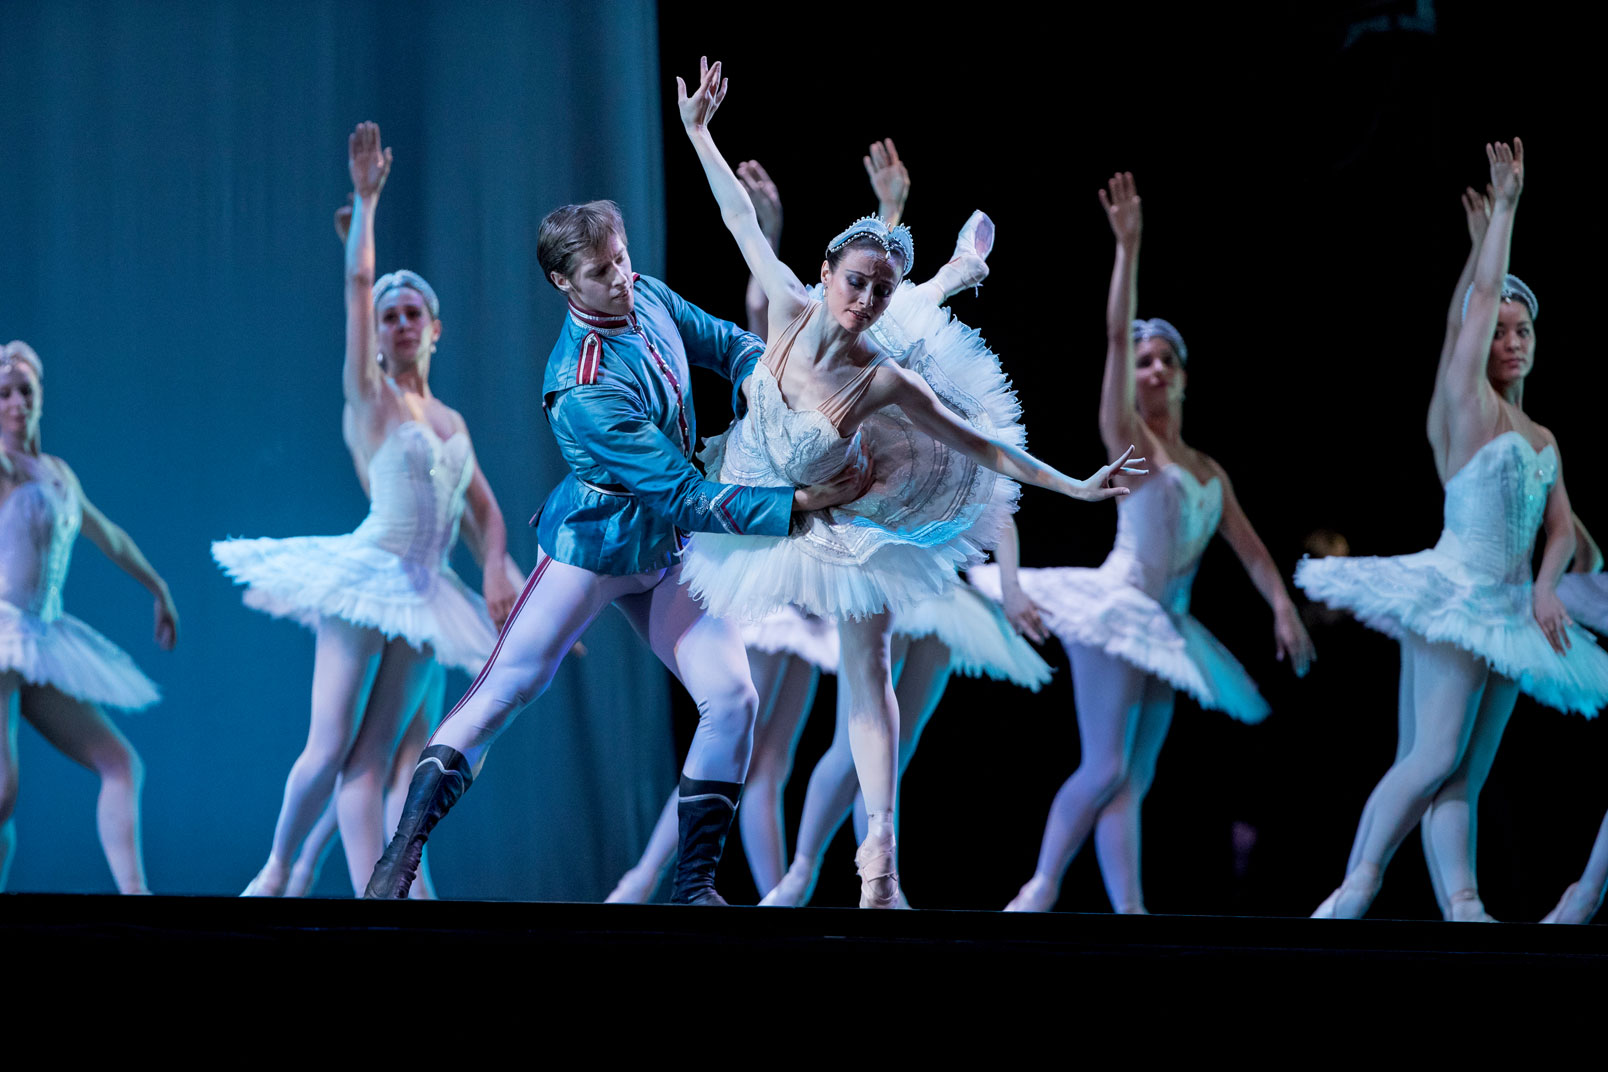 DESTINATION-NSW_BALLET-UNDER-THE-STARS_PENRITH_JH-0216